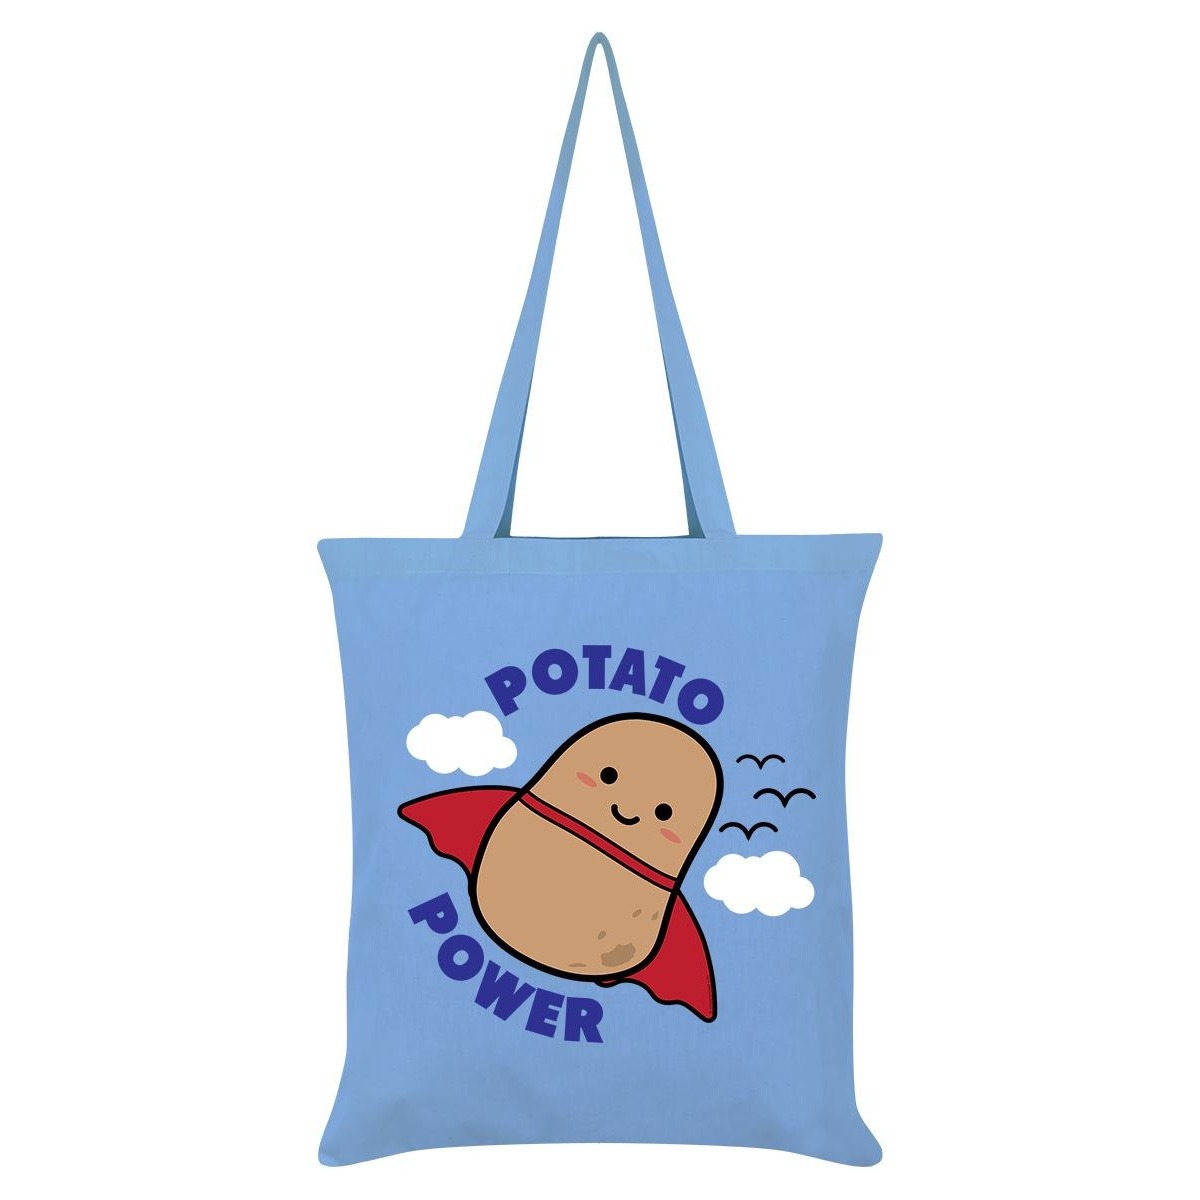 Grindstore Potato Power Tote Bag (One Size) (Sky Blue)